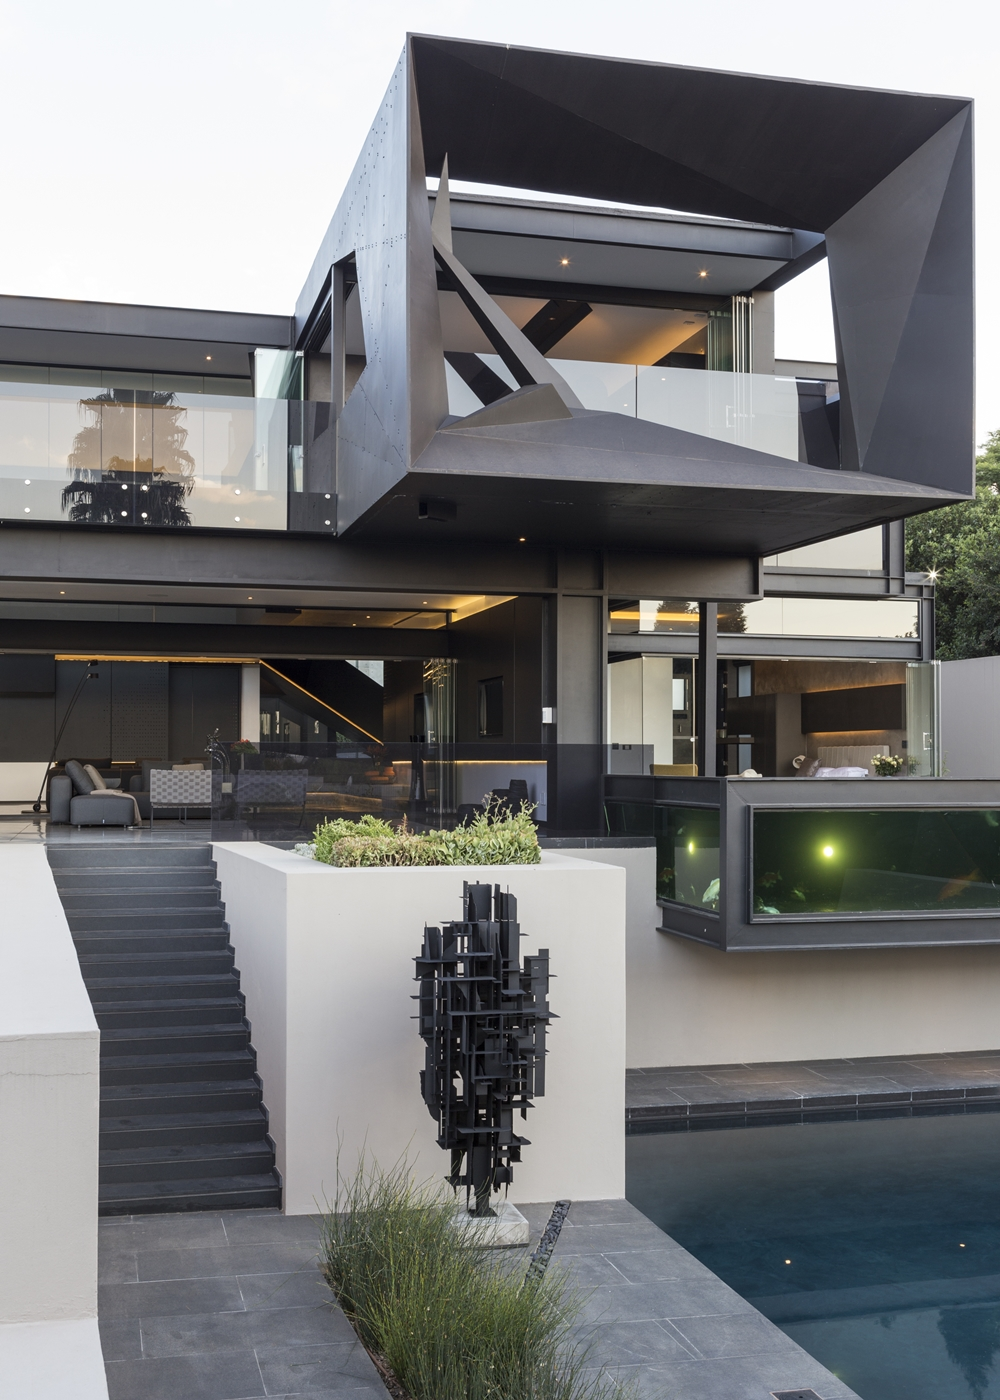 Best houses in the world amazing kloof road house for Best modern houses